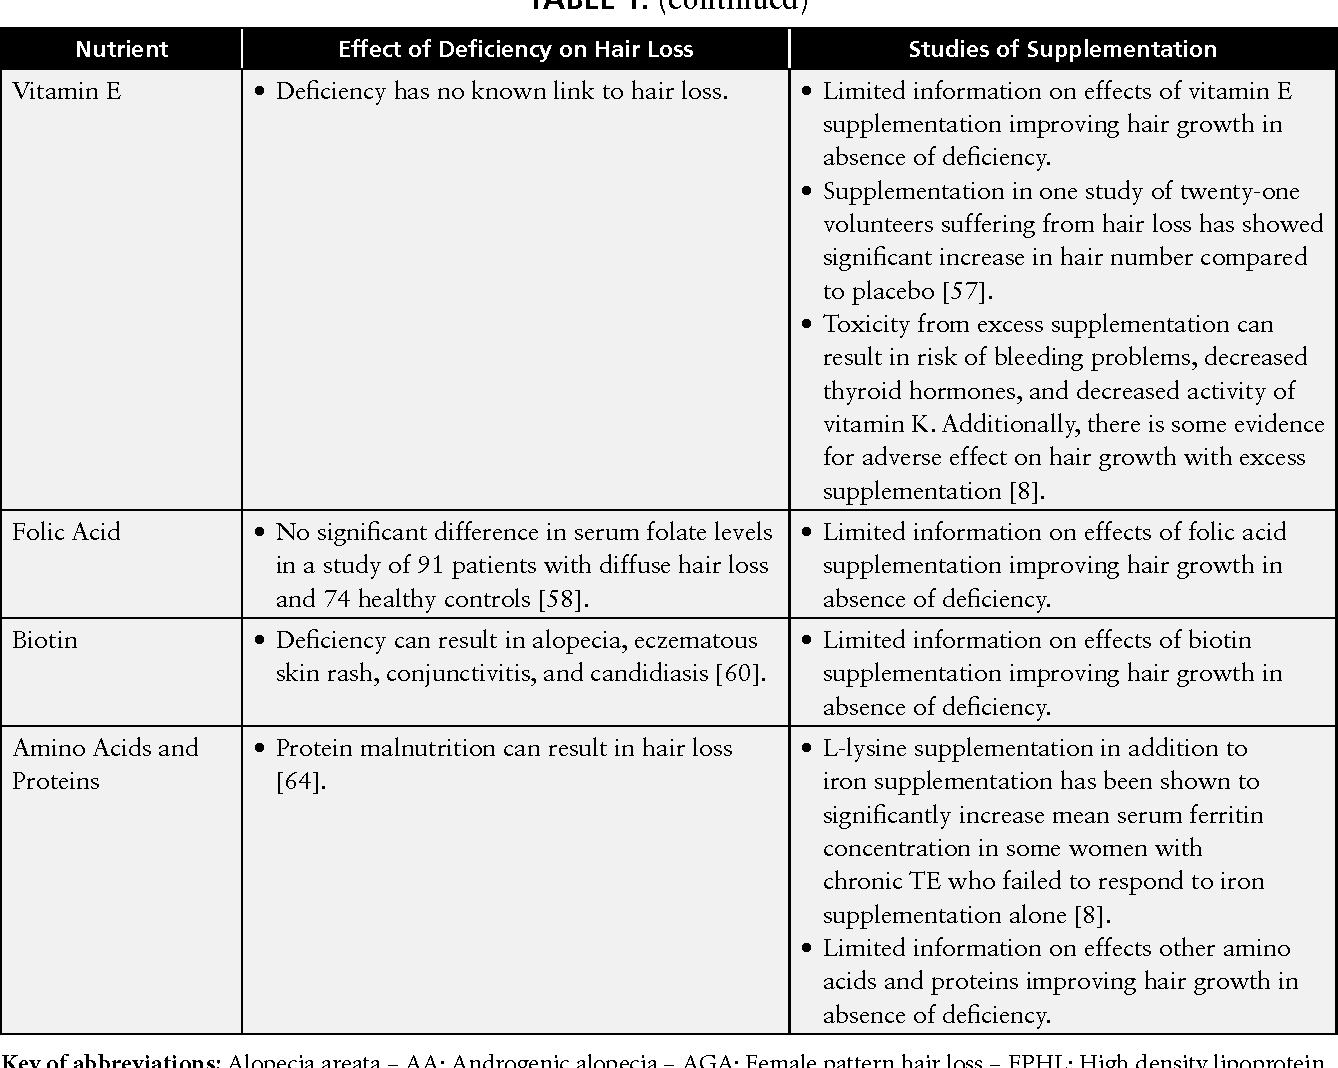 Table 1 from Diet and hair loss: effects of nutrient